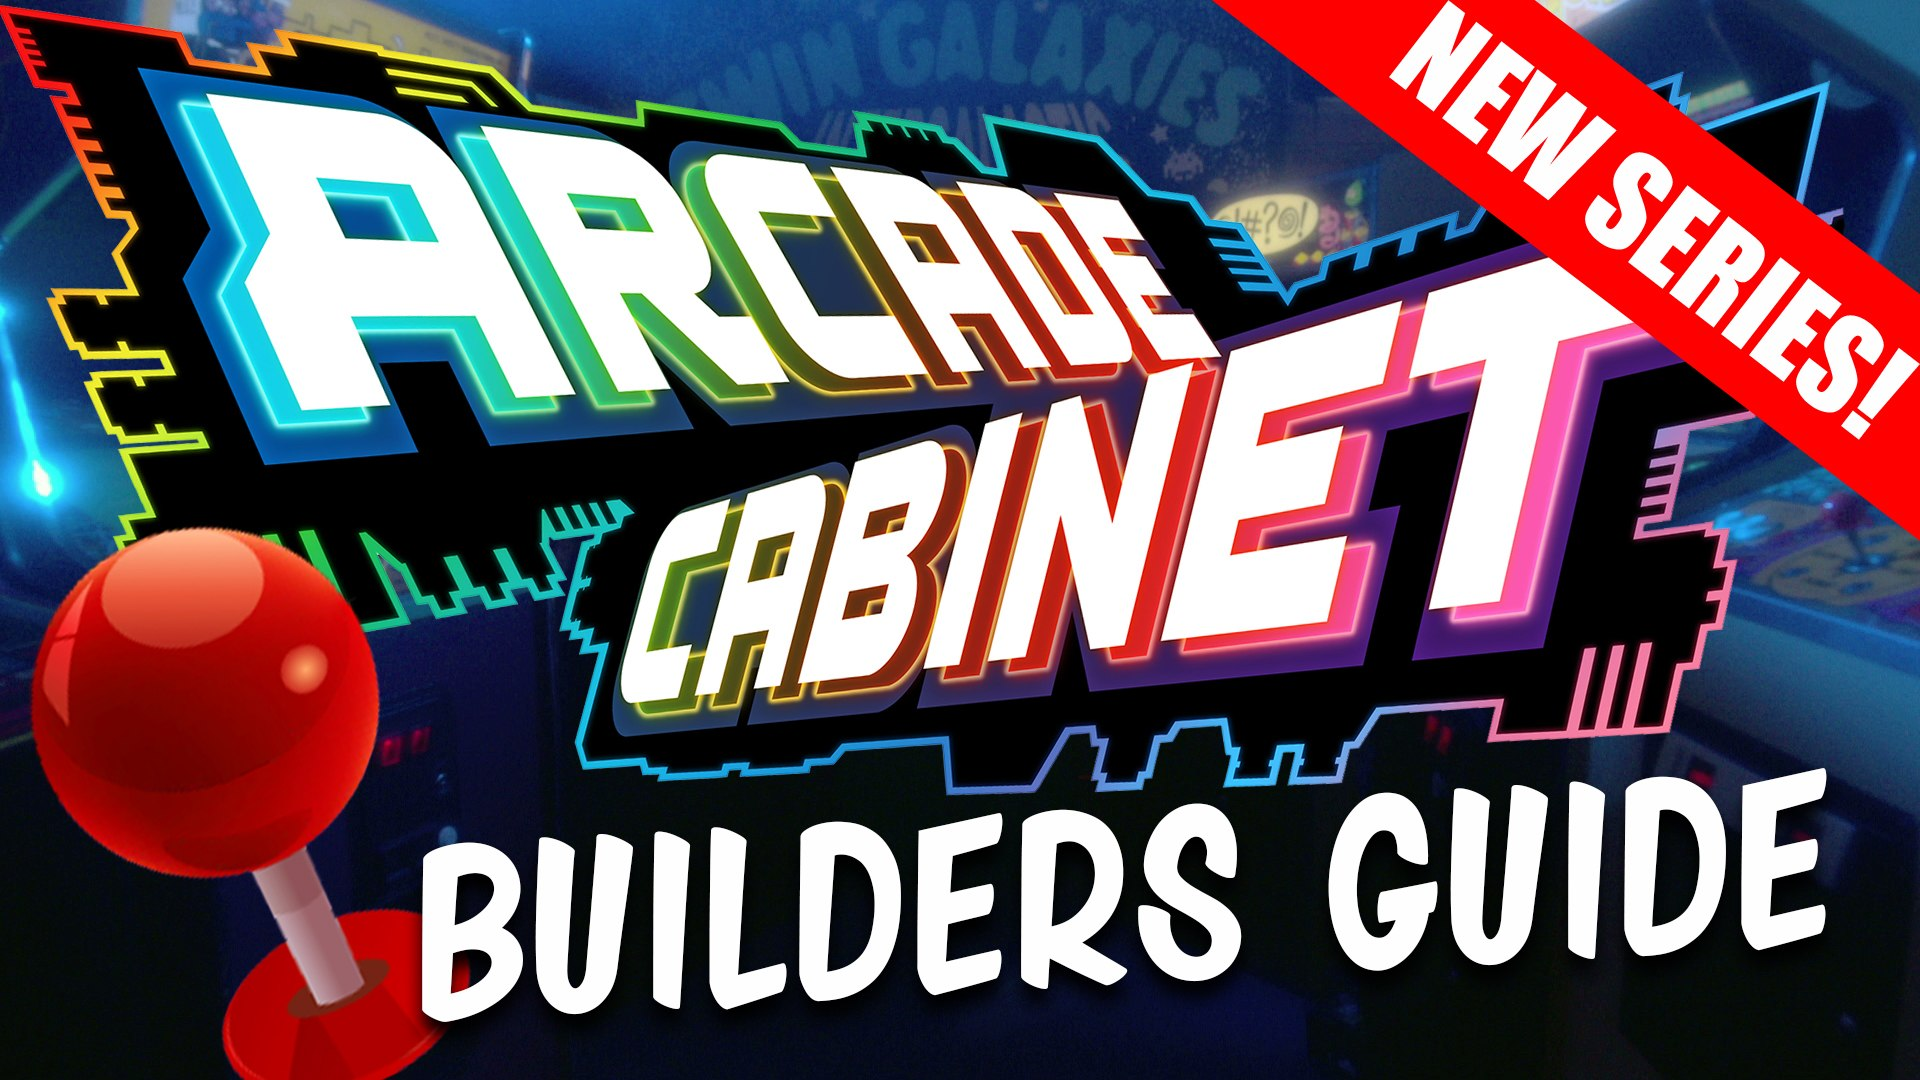 How to Build the ULTIMATE Arcade - NEW SERIES 2016